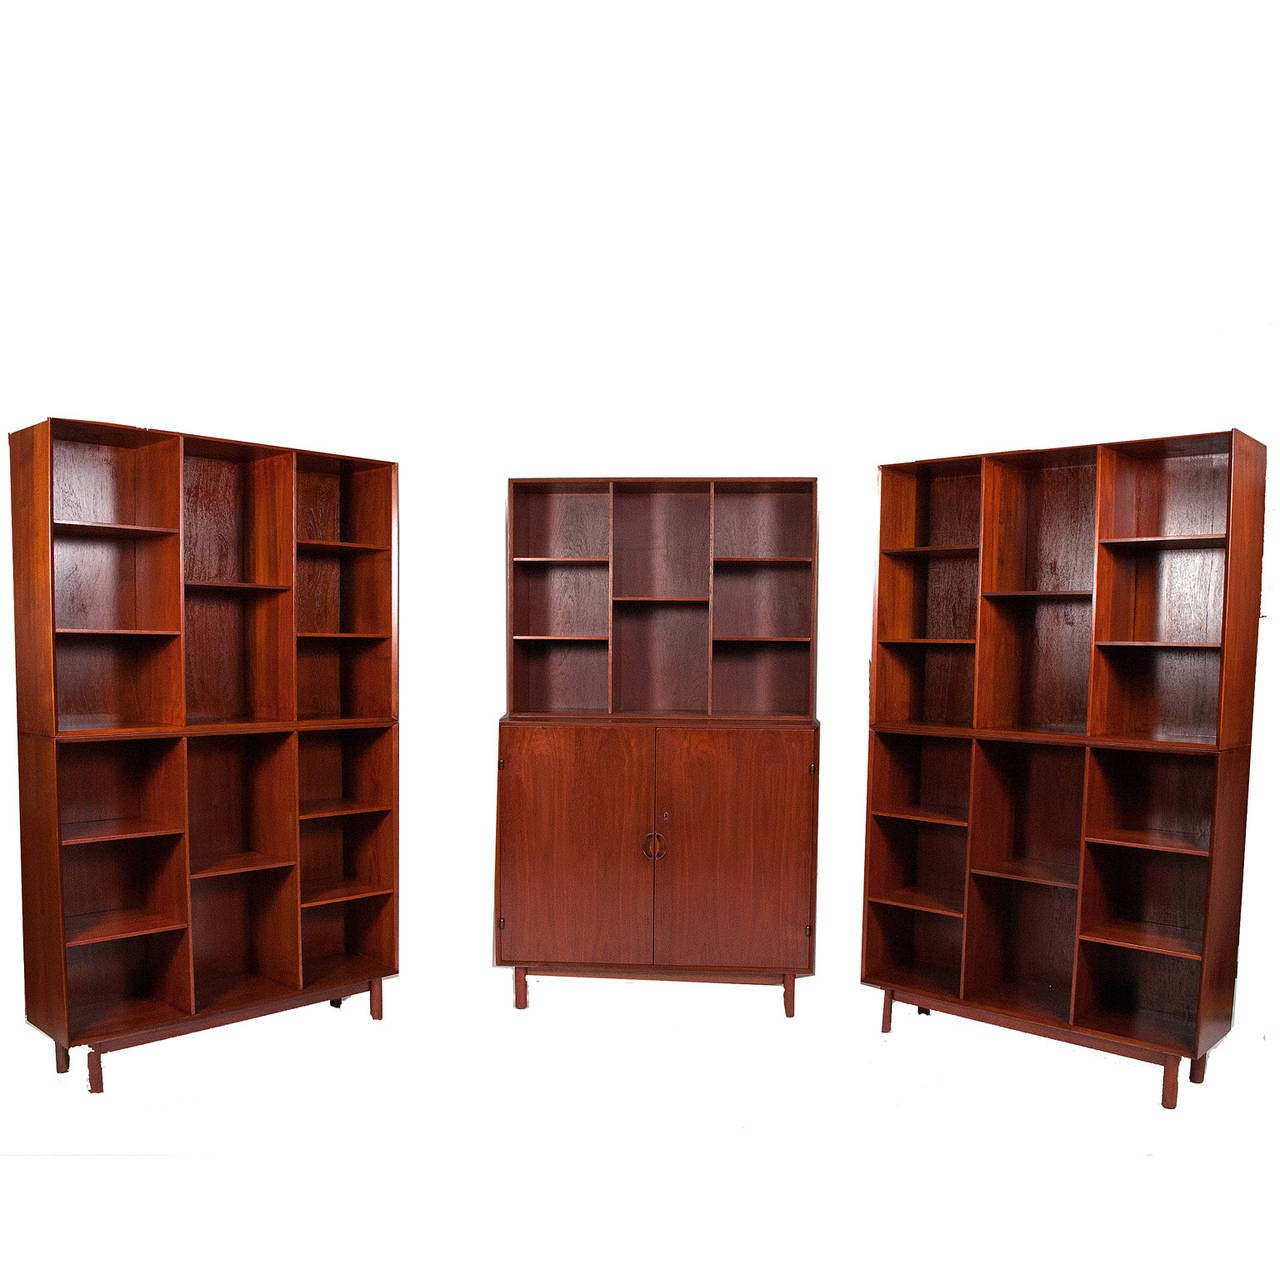 Storage Bookcases Corner And L Shape Desks All Home Office Furnitur . Full resolution‎  image, nominally Width 1280 Height 1280 pixels, image with #AF471C.